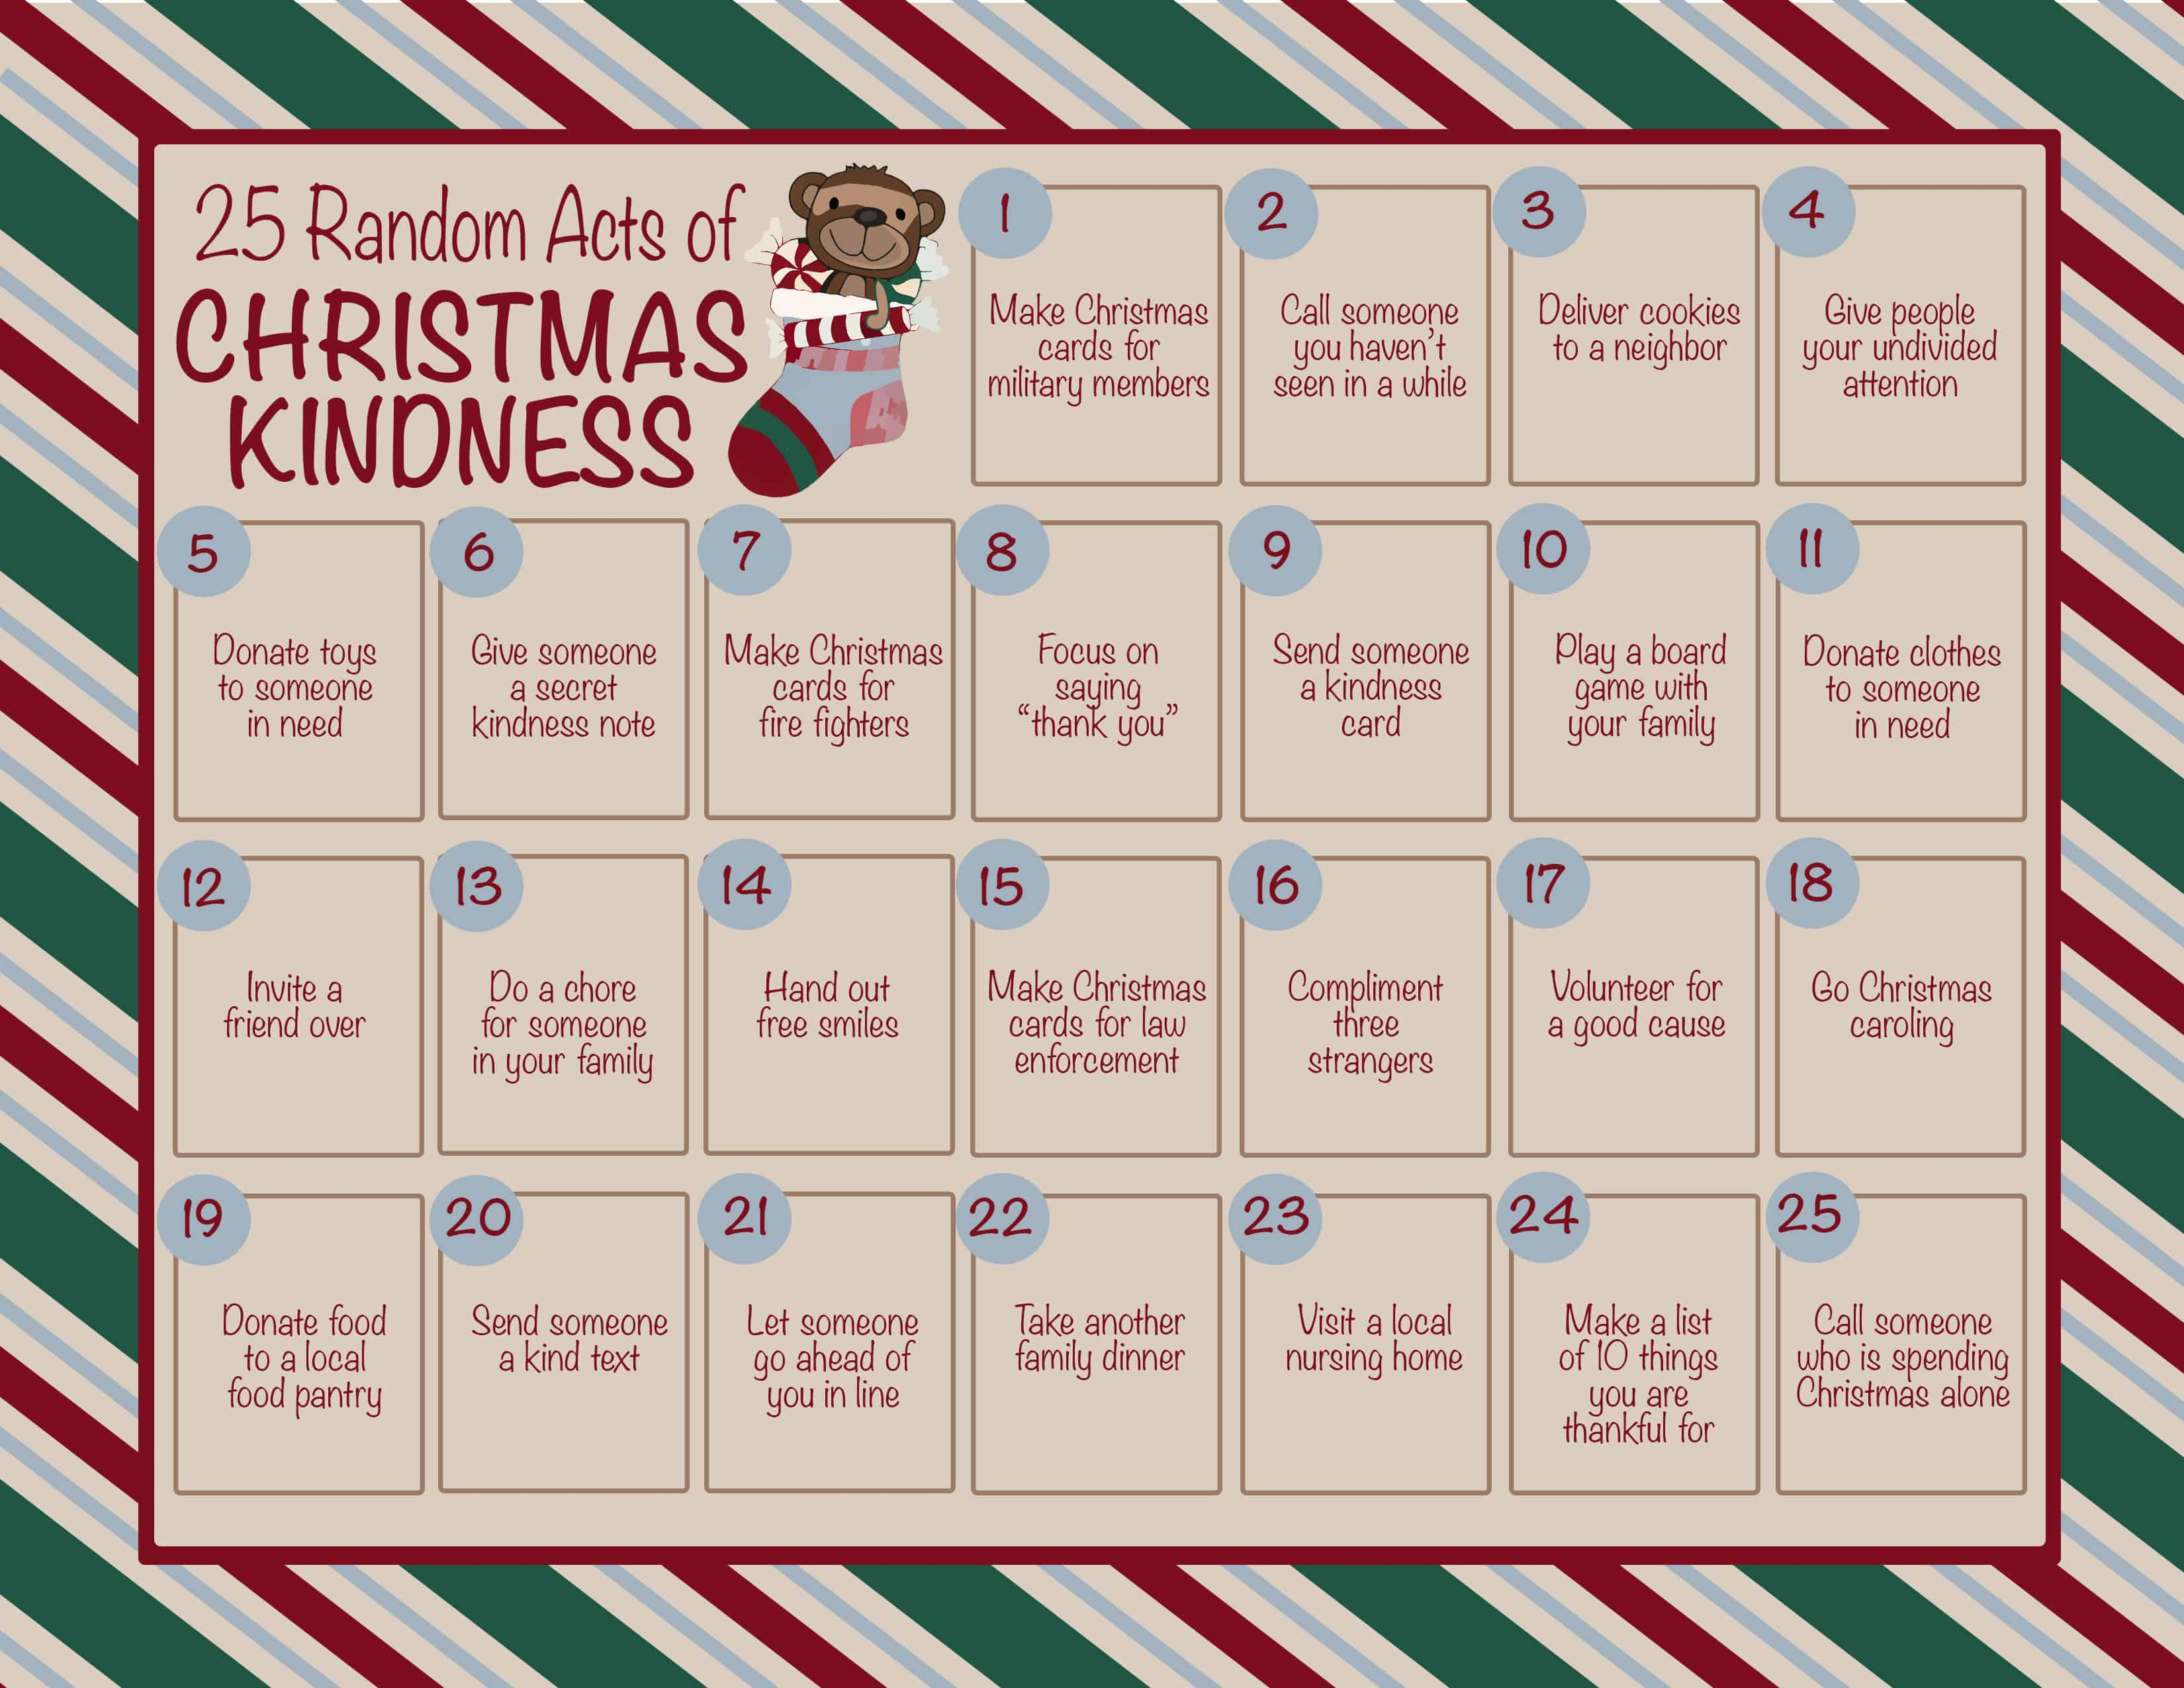 25 Random Acts of Christmas Kindness Calendar Printable - A free printable to help promote kindness this holiday season. Commit to one act of kindness each day, spreading love all around you! #InspirationalMomma #Kindness #FreePrintable #ChristmasCalendar #RandomActsOfKindness #Christmas #PrintableCalendar